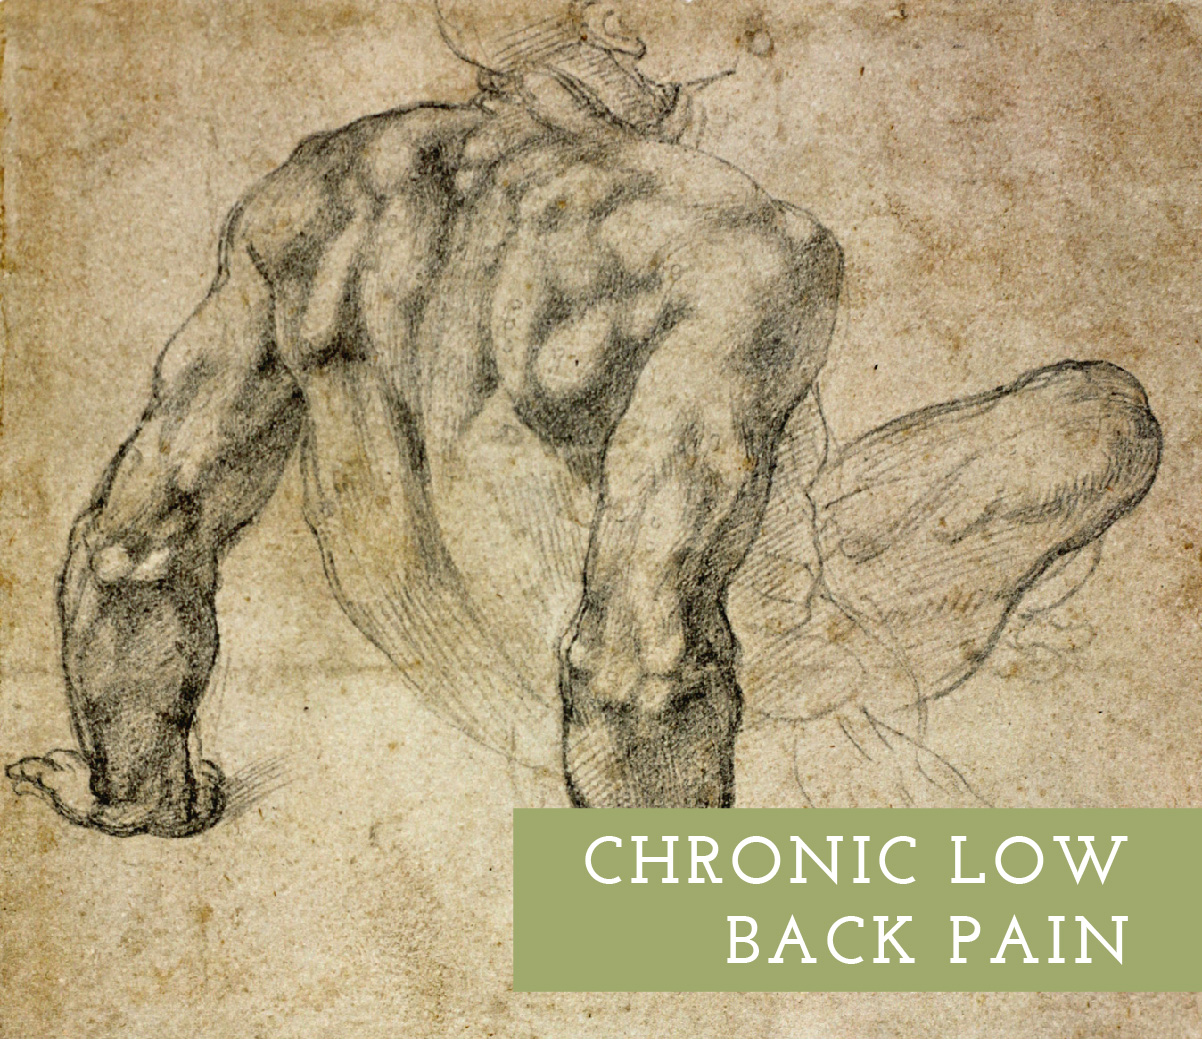 This session would start with a postural assessment to identify the major muscles and joints at play, then ensure proper low back support to maximize comfort during the treatment. A possible combination of effective modalities could include Tui Na, deep tissue, and heat.